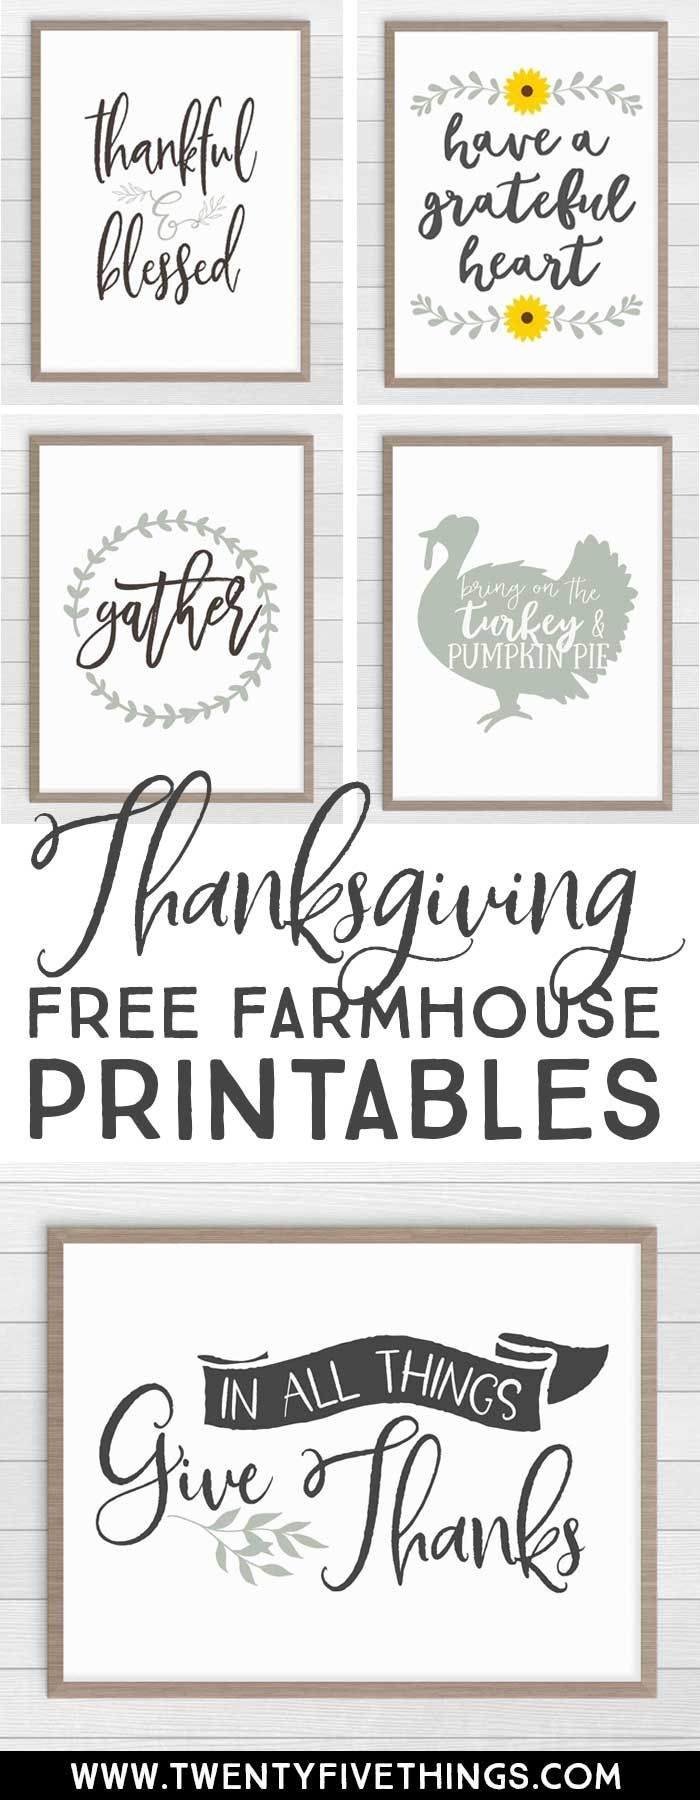 These farmhouse Thanksgiving prints are exactly what I've been looking for! The colors are spot-on. So easy to just download and print at this site. #FarmhouseDecor #ThanksgivingDecor #FreePrintables